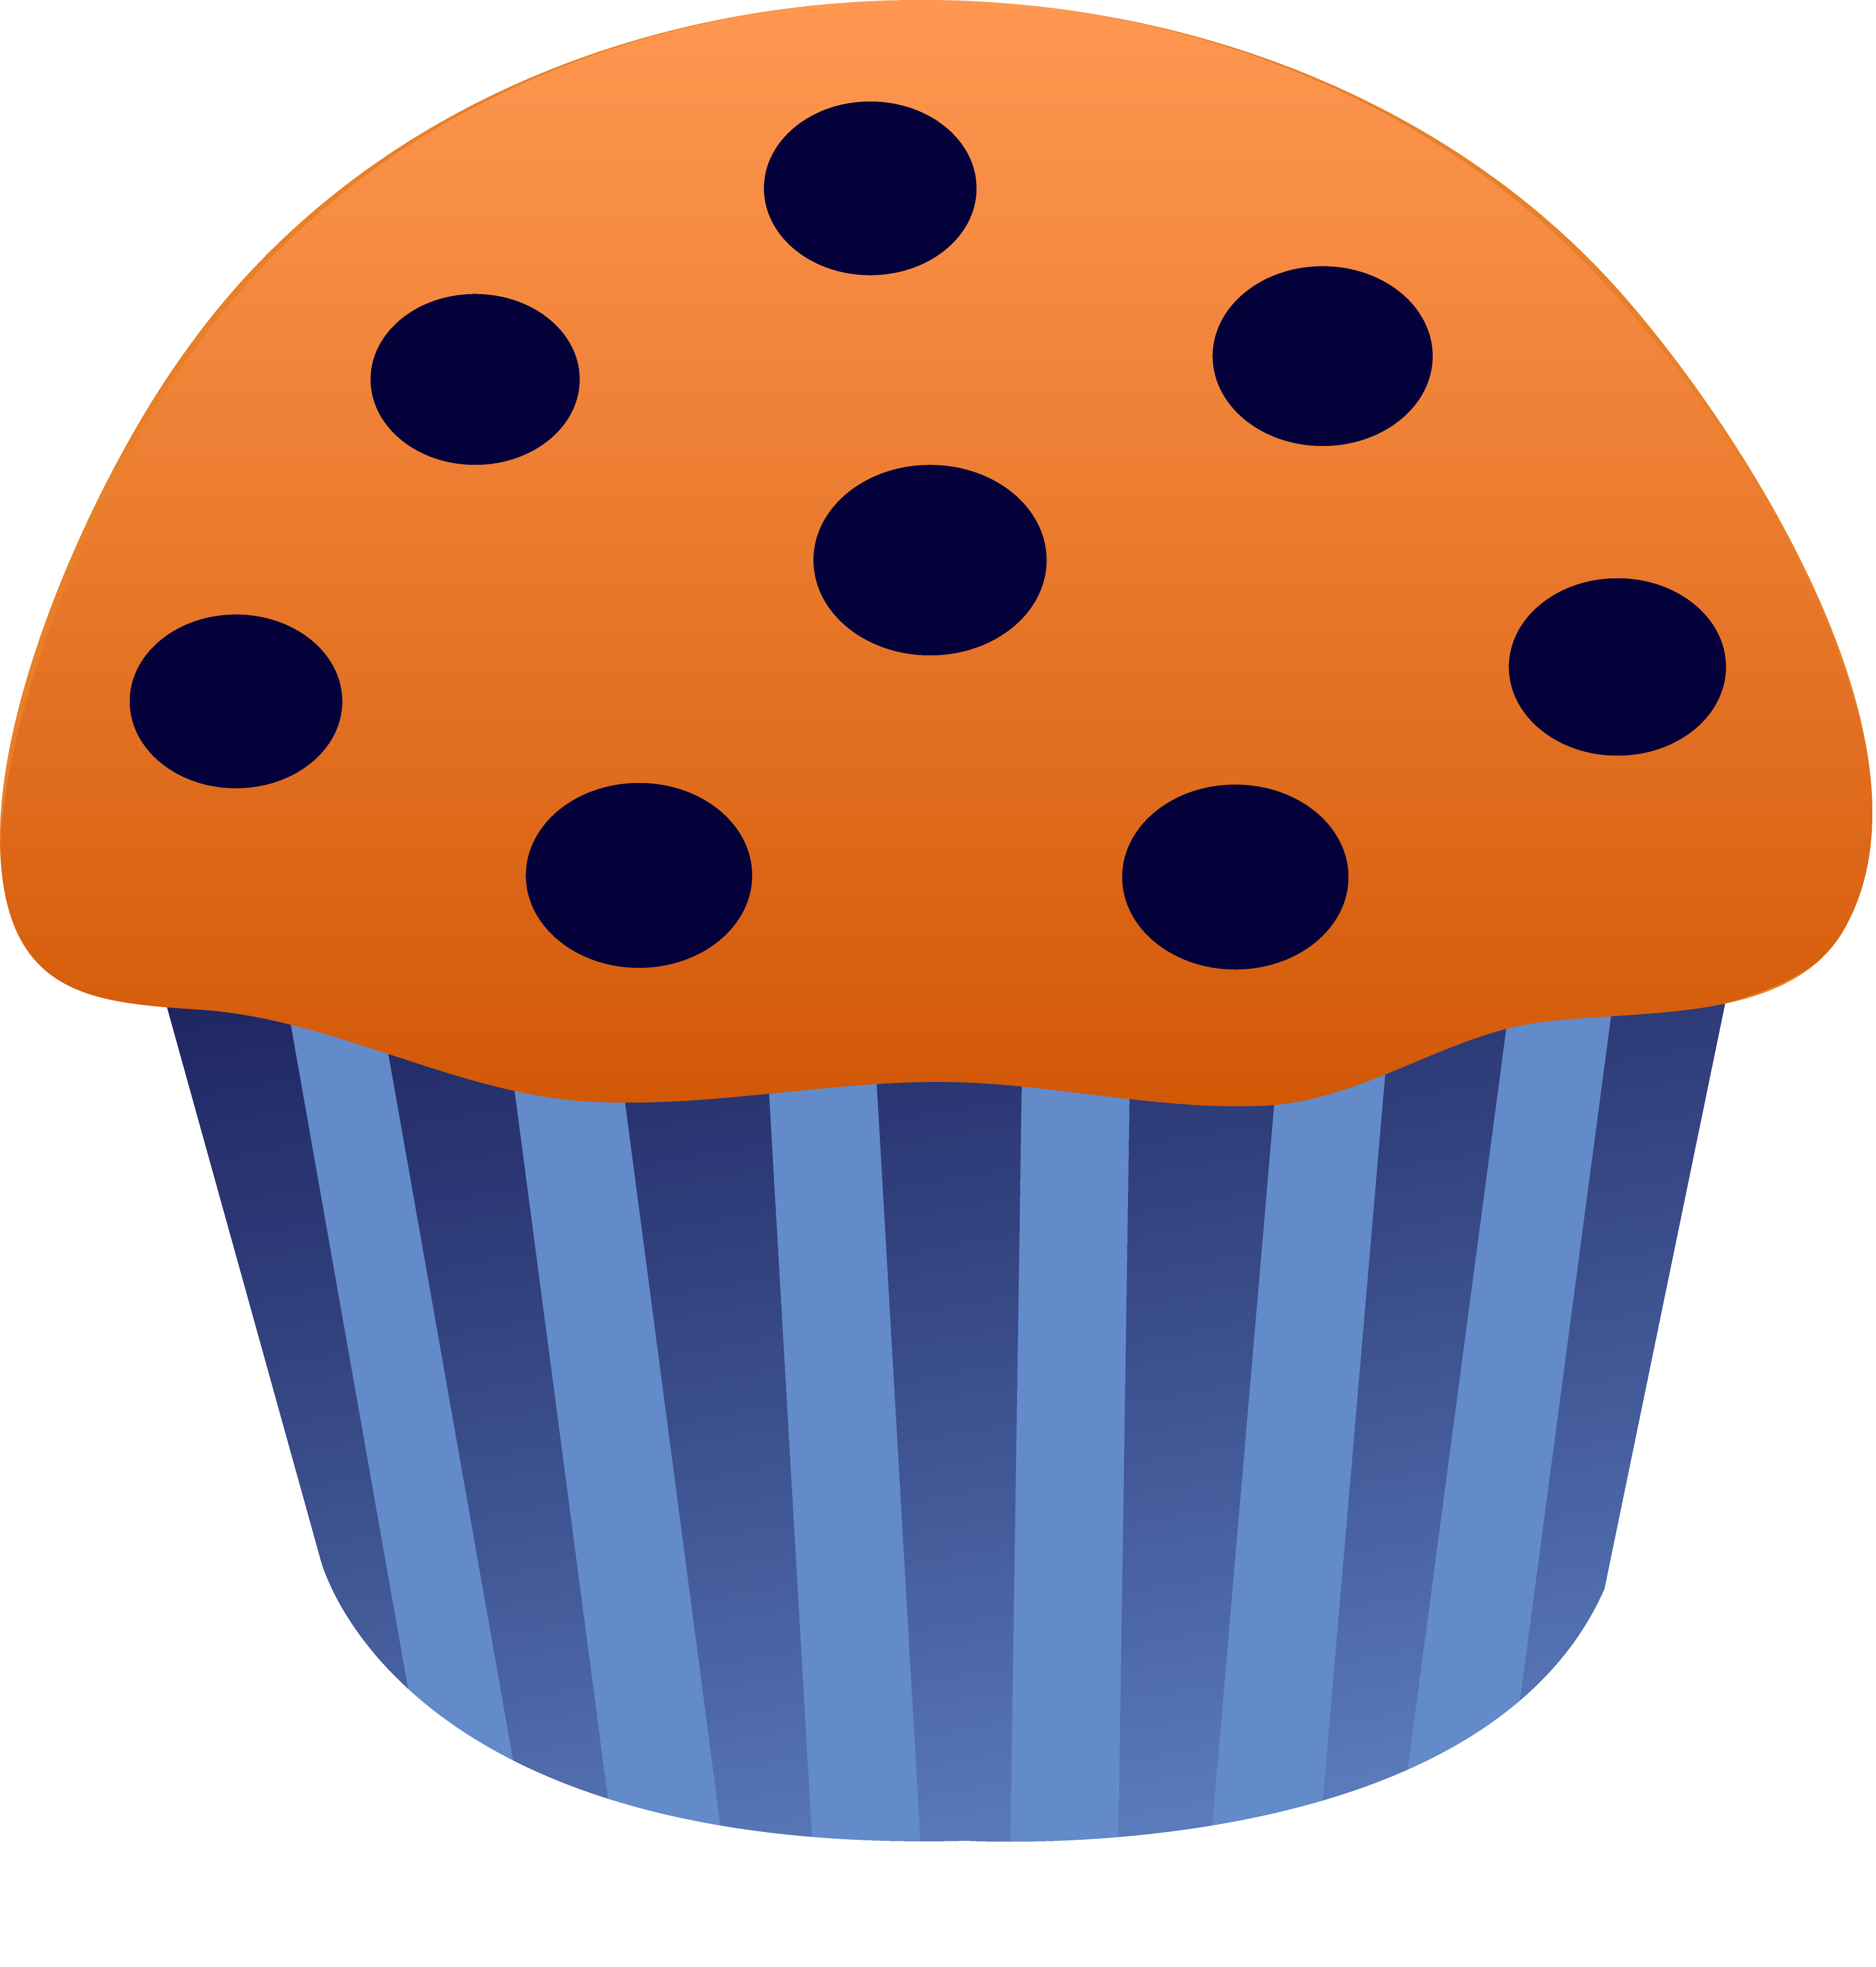 Sweets clipart different object Clip  Muffin Clipart Muffins